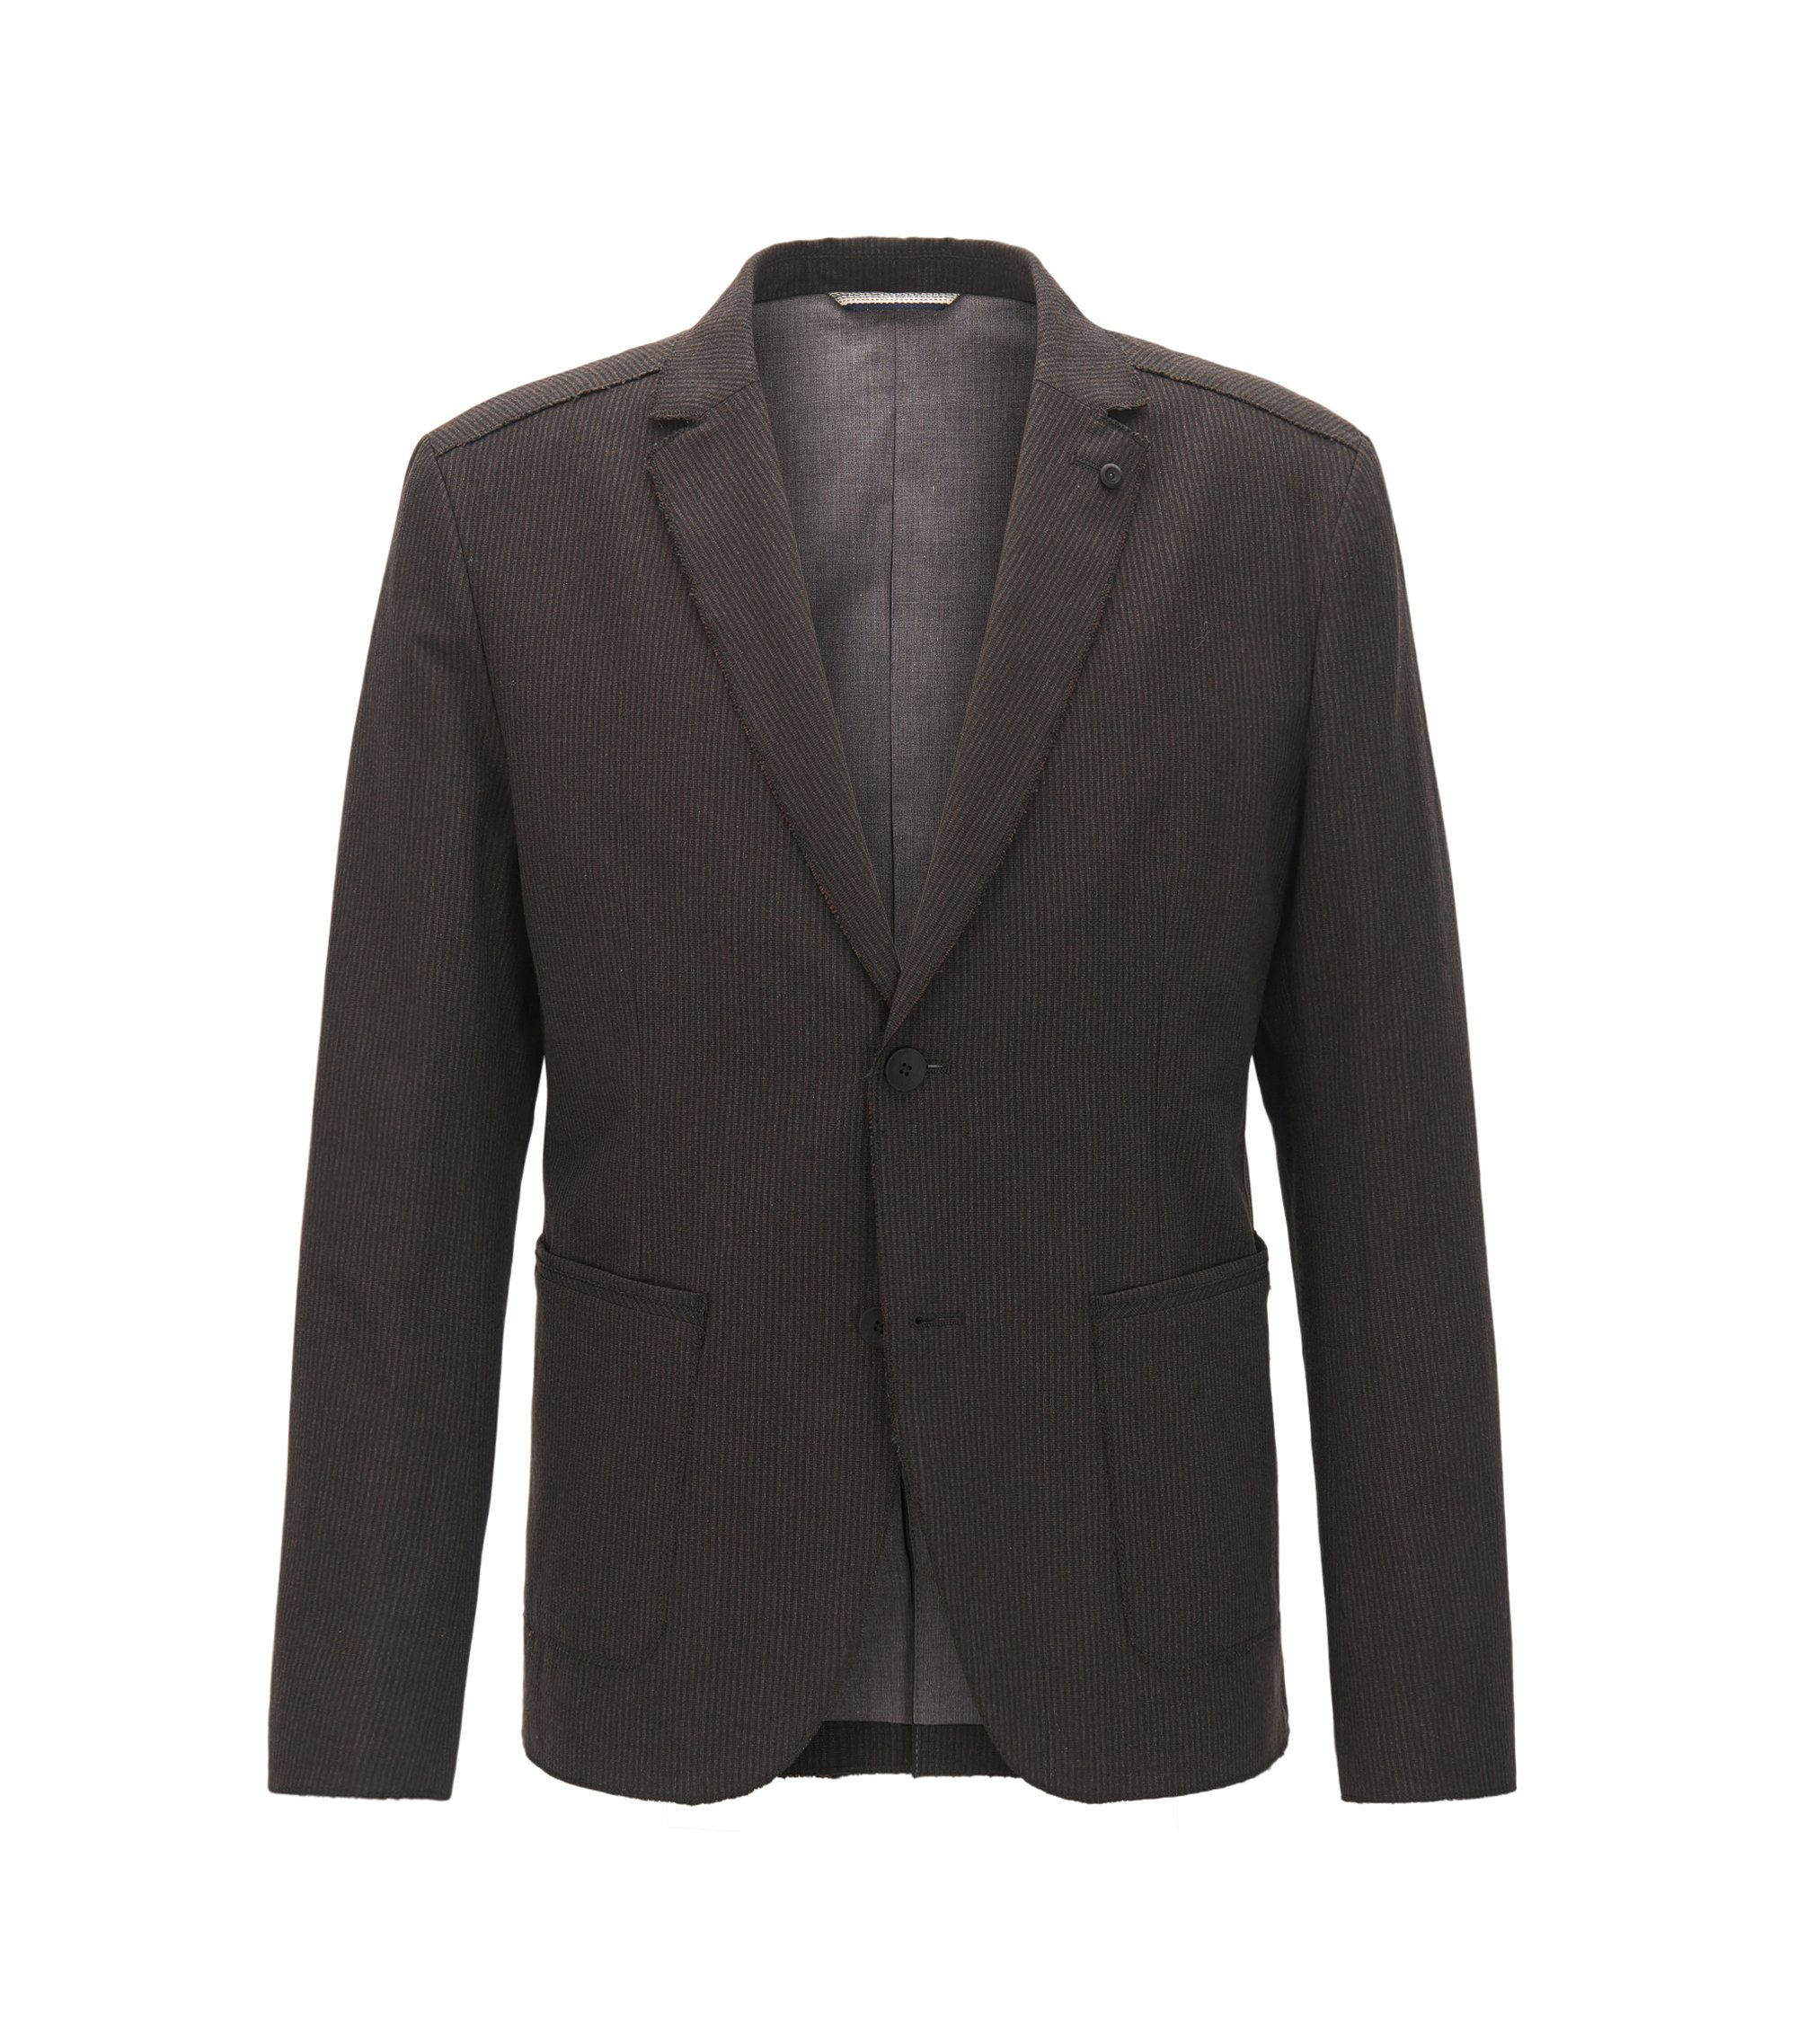 Cotton Blend Sport Coat, Slim Fit | Becks BS, Dark Brown